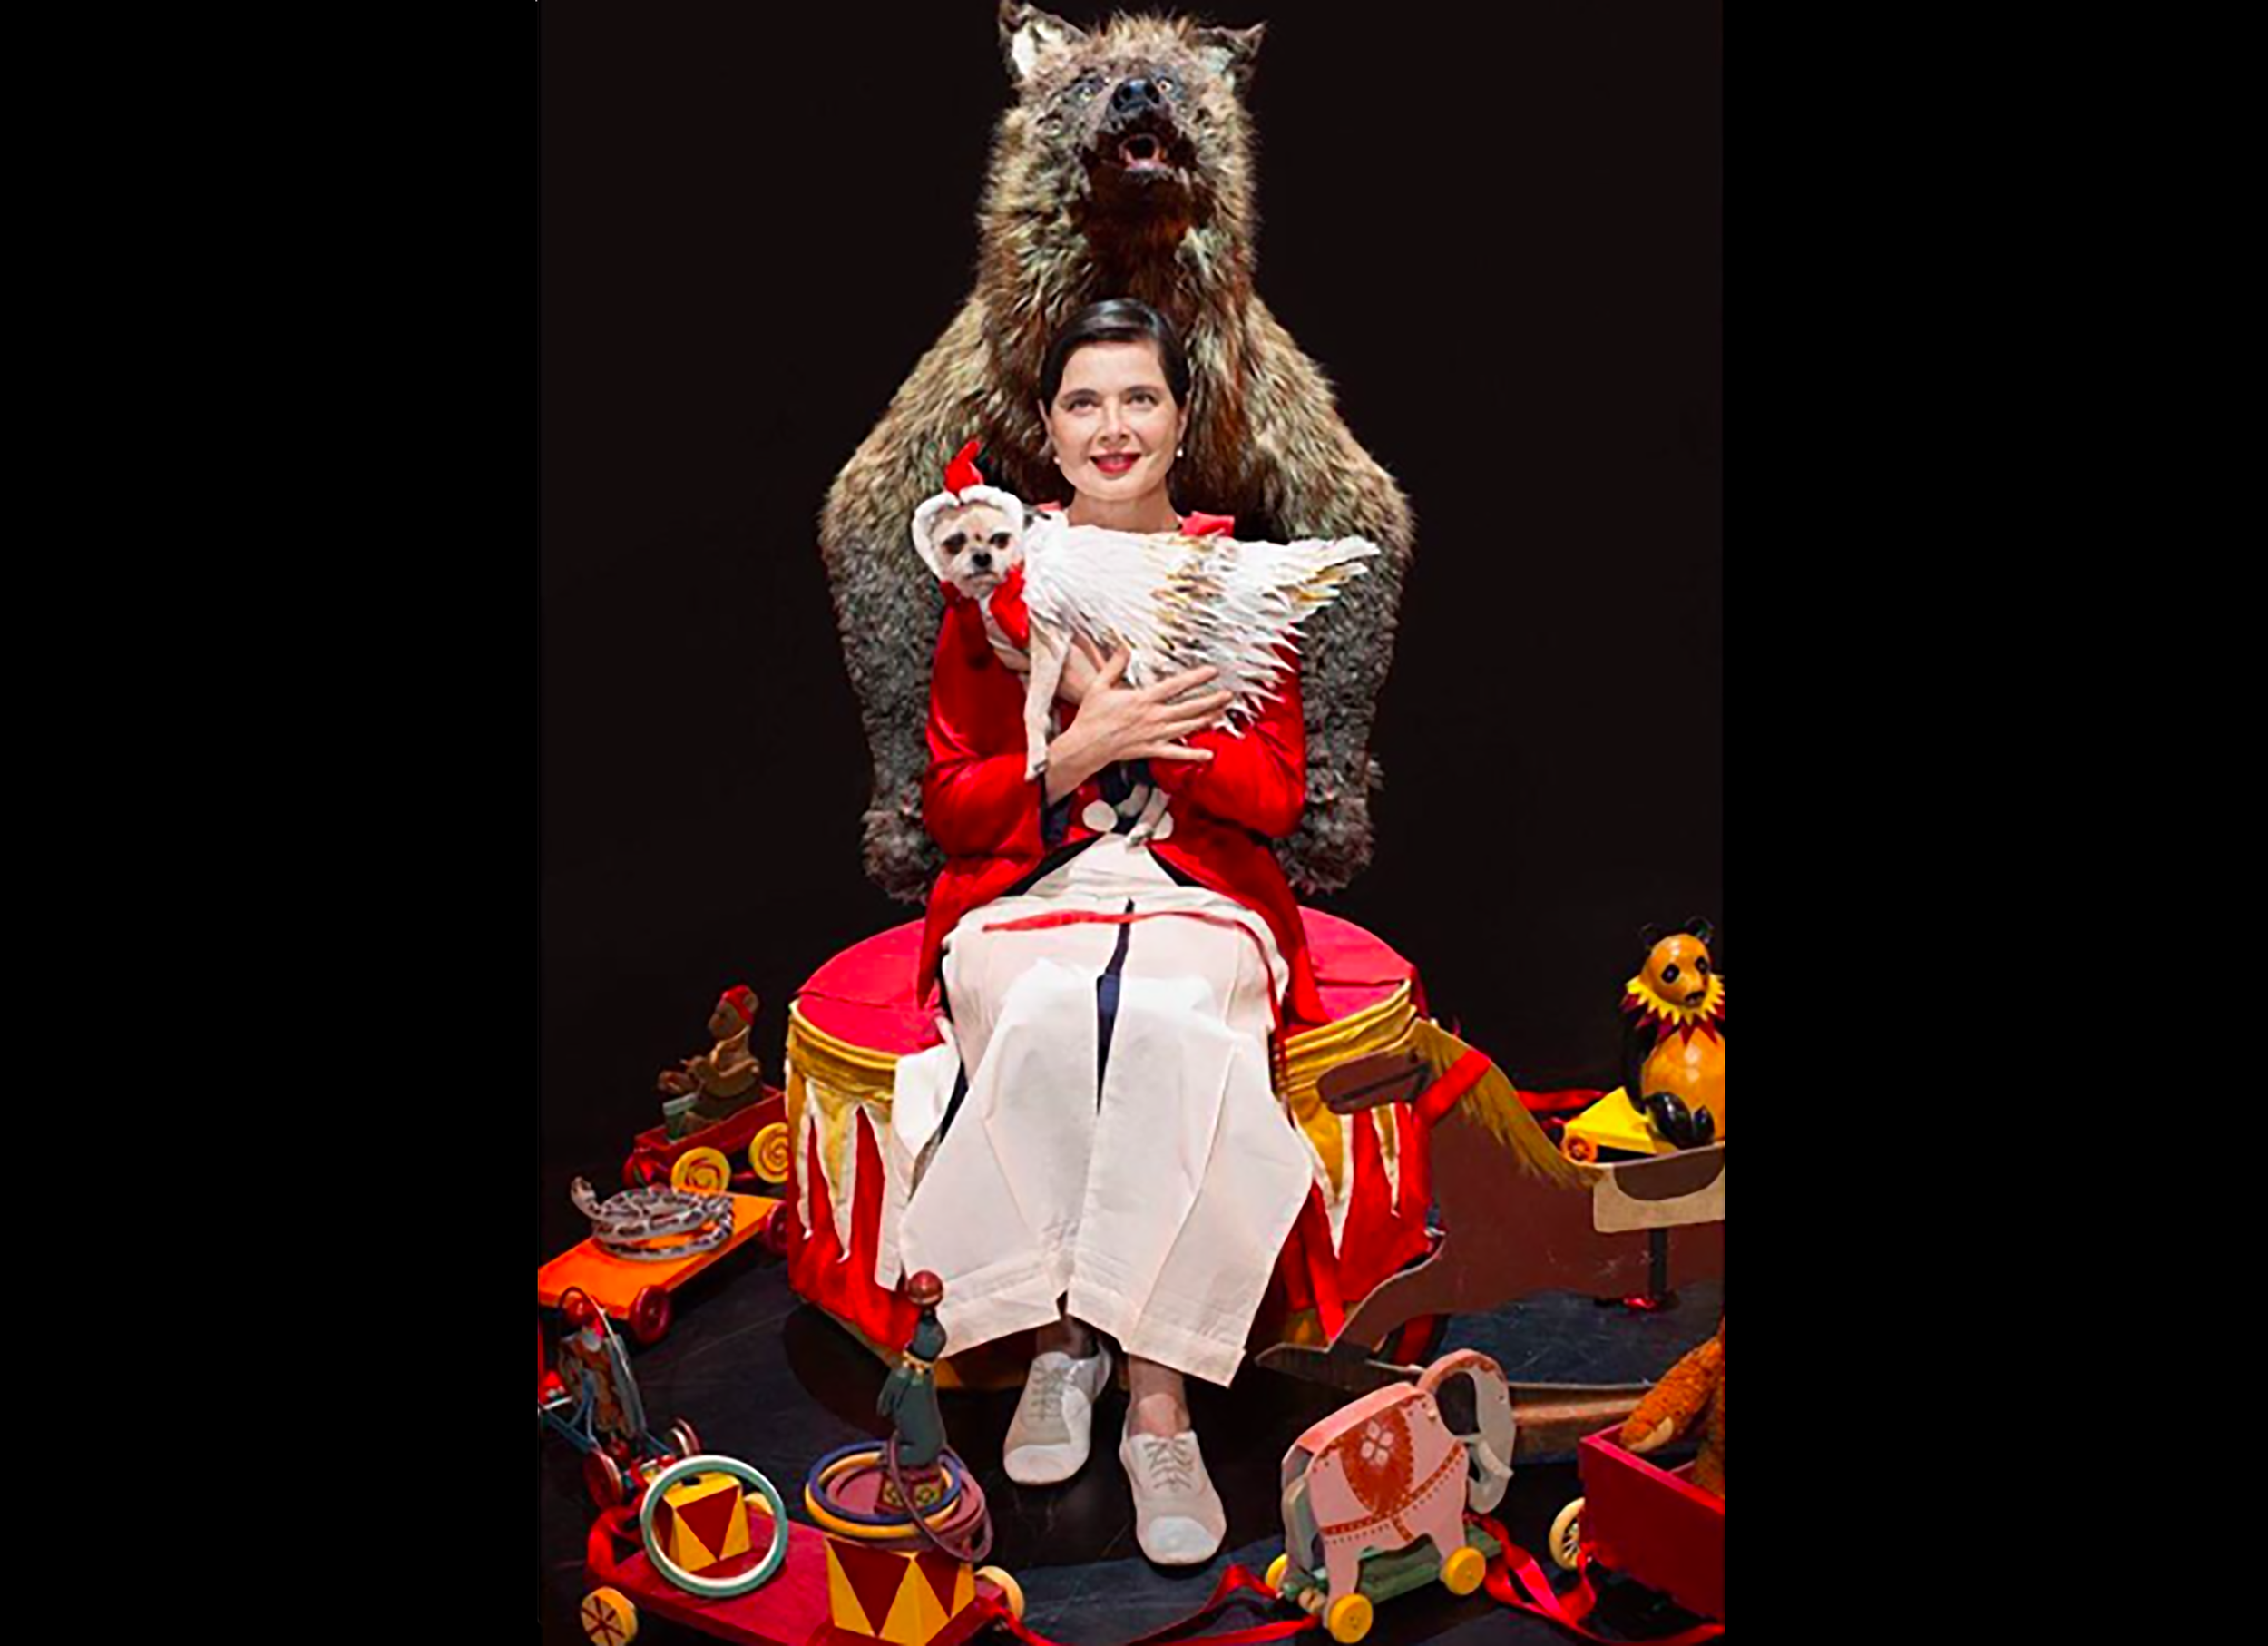 "THE POSTER FOR ISABELLA ROSSELLINI' S UPCOMING SHOW! ""LINK-LINK CIRCUS"" PREMIERING IN BARCELONA IN MARCH, THEN NEW YORK CITY AND MANY MORE PLACES. I MADE HER COSTUME, AN INCREDIBLE CHANCE!   HERE PHOTOGRAPHED BY BRIGITTE LACOMBE DURING THE REHEARSALS IN NOVEMBER 2017"